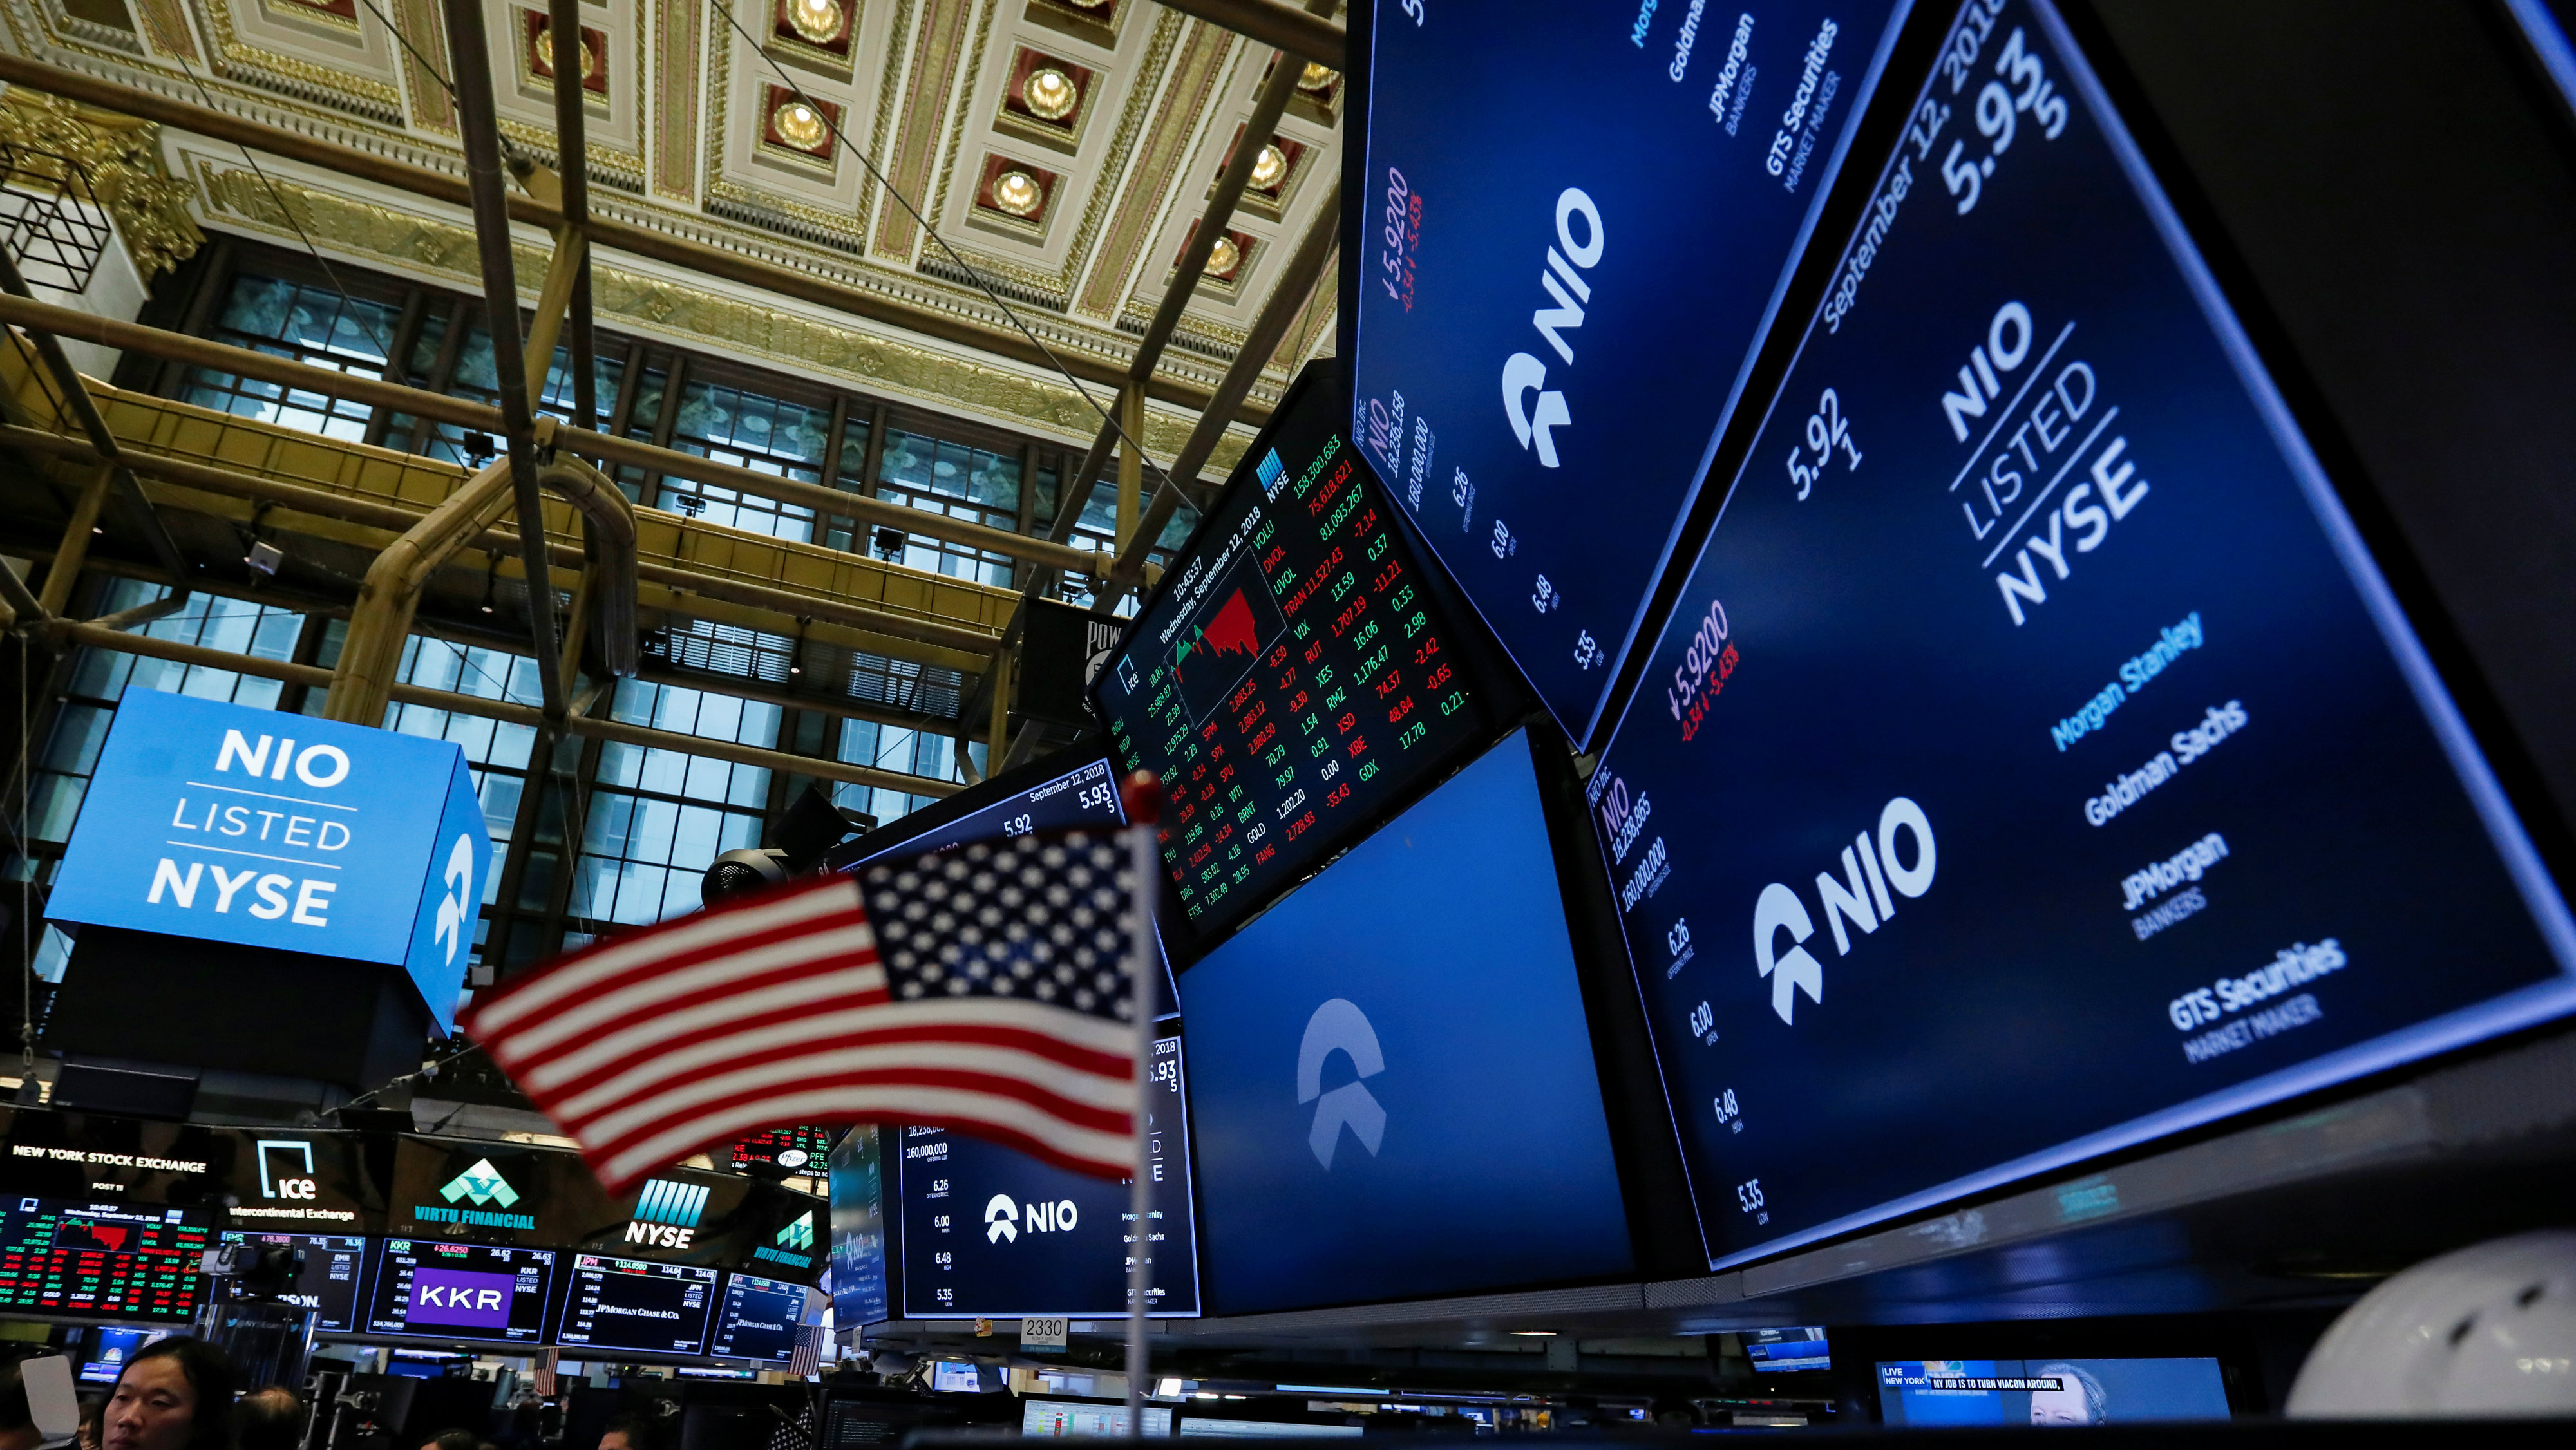 An American flag is seen among logos for Chinese electric vehicle start-up NIO Inc., on the trading floor of the New York Stock Exchange